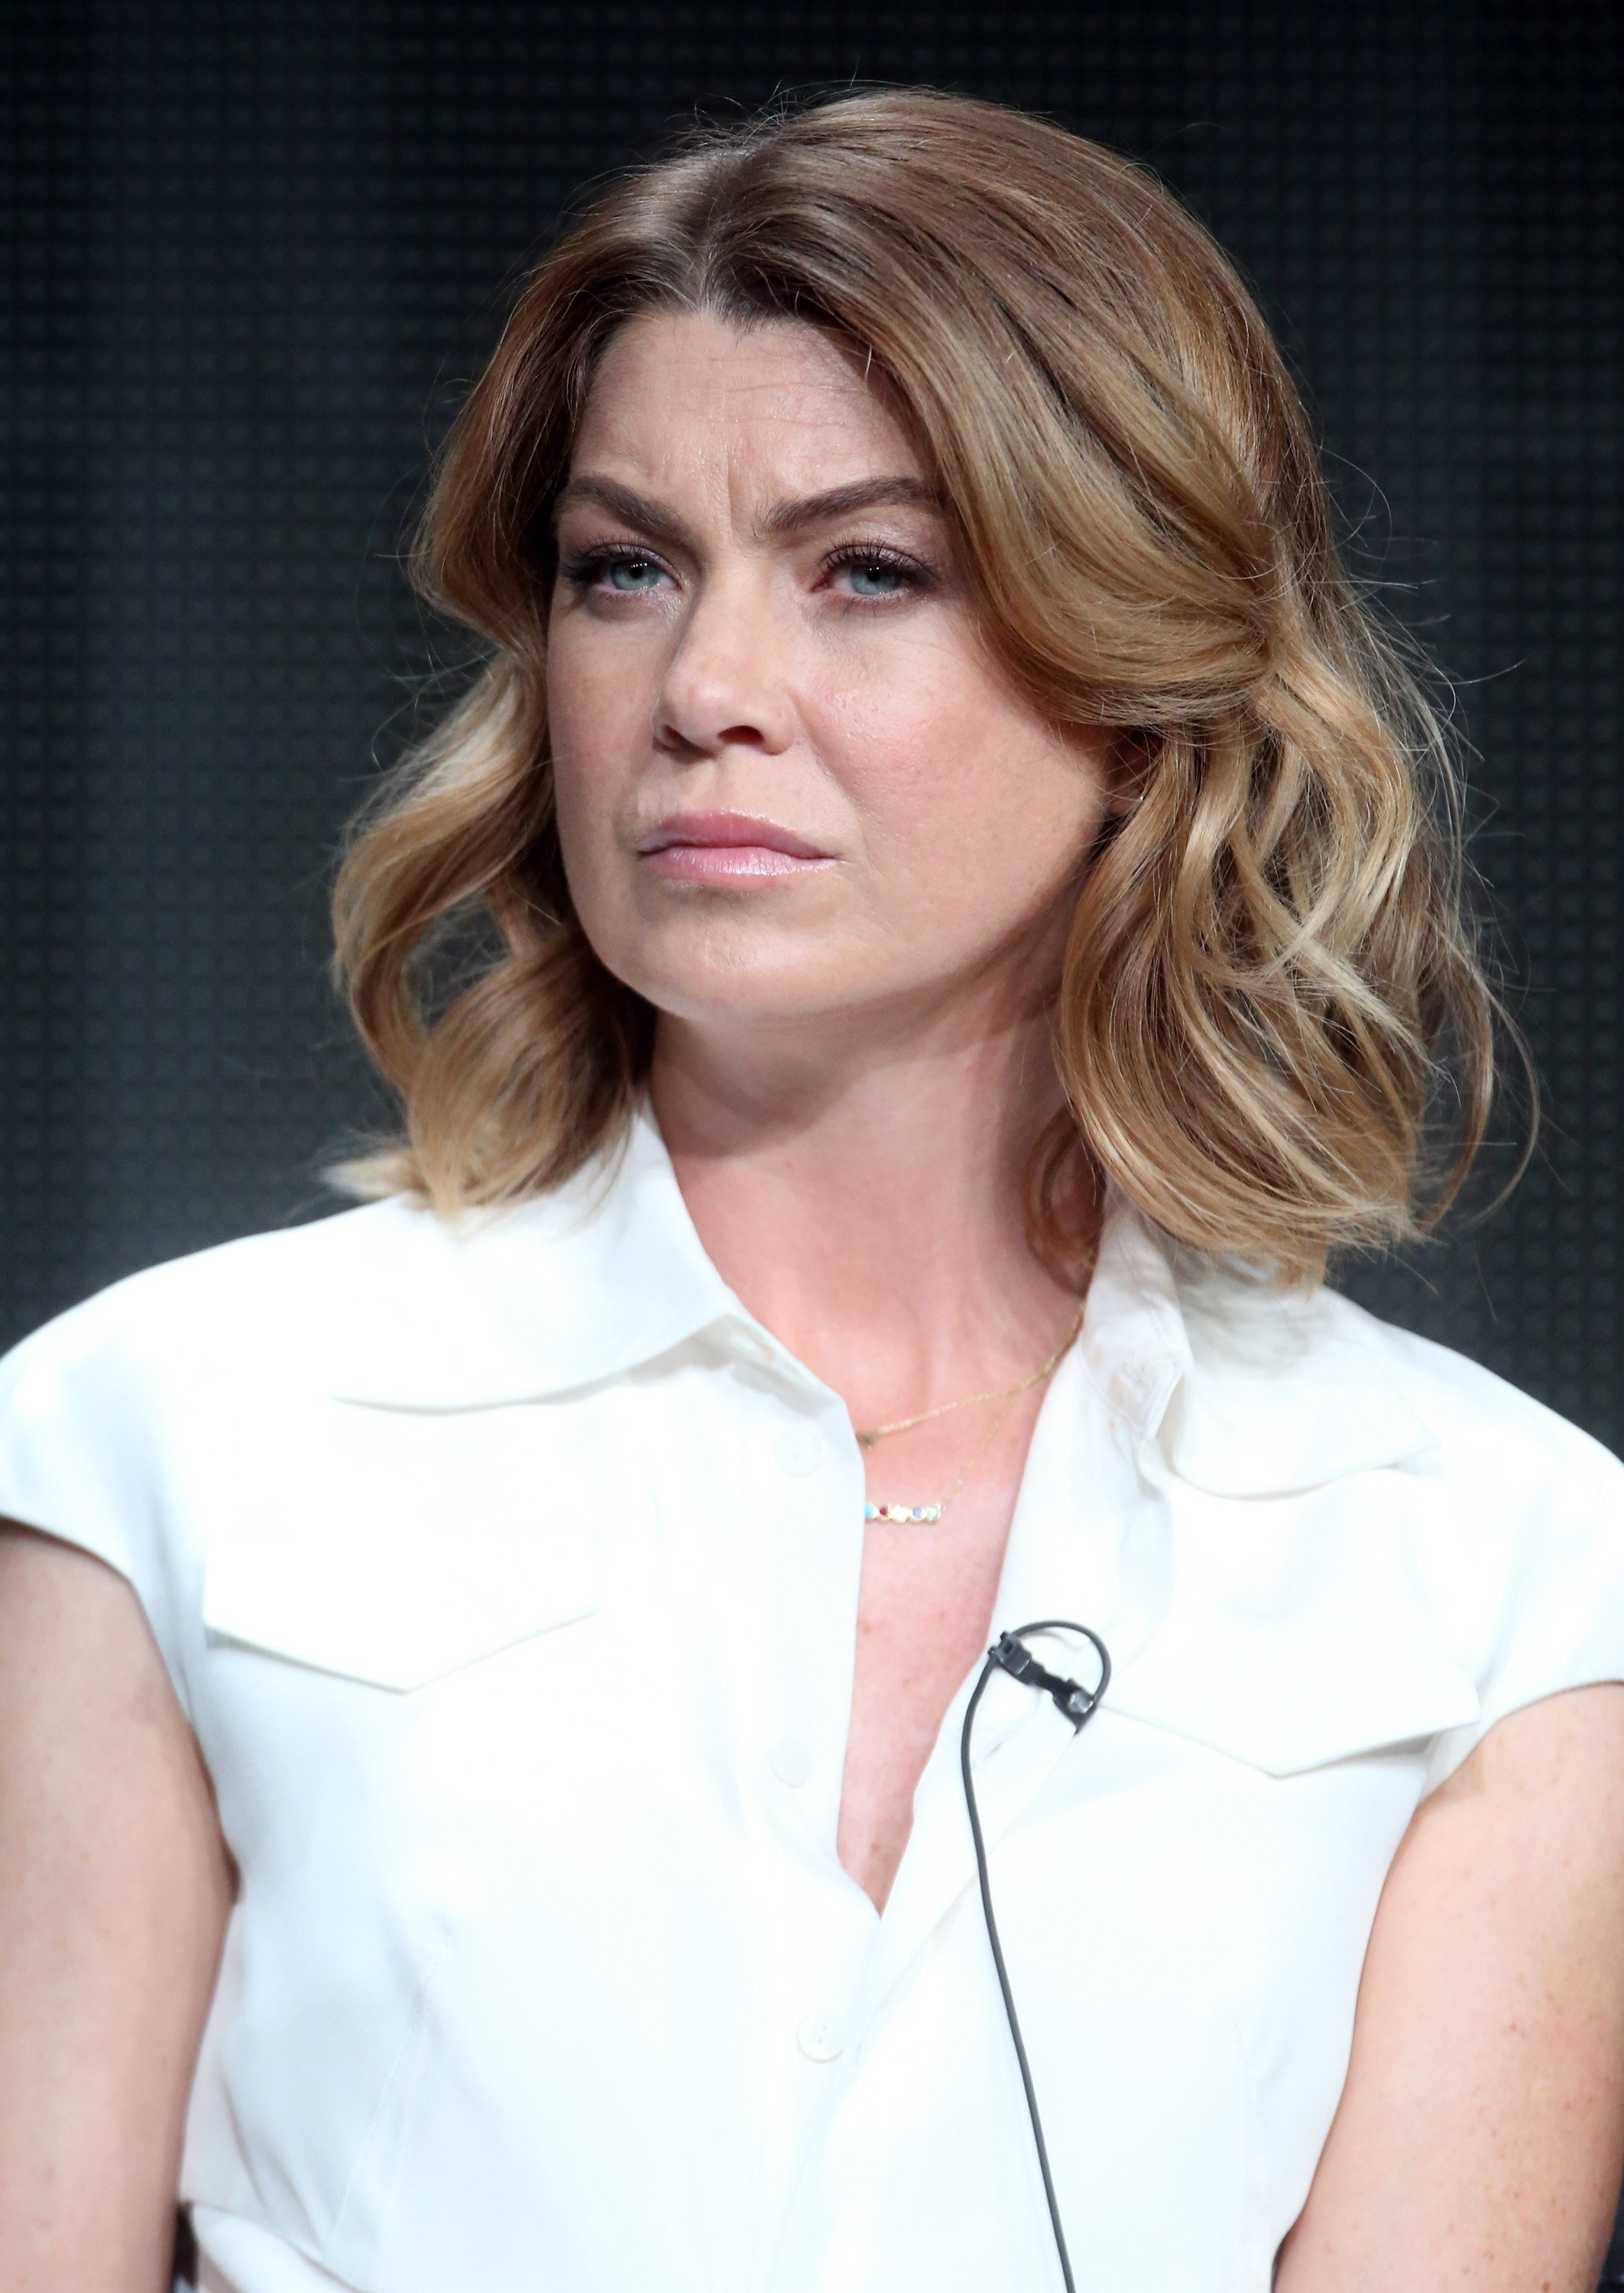 Ellen Pompeo at the Summer TCA Tour on August 4, 2015 in California | Photo: Getty Images